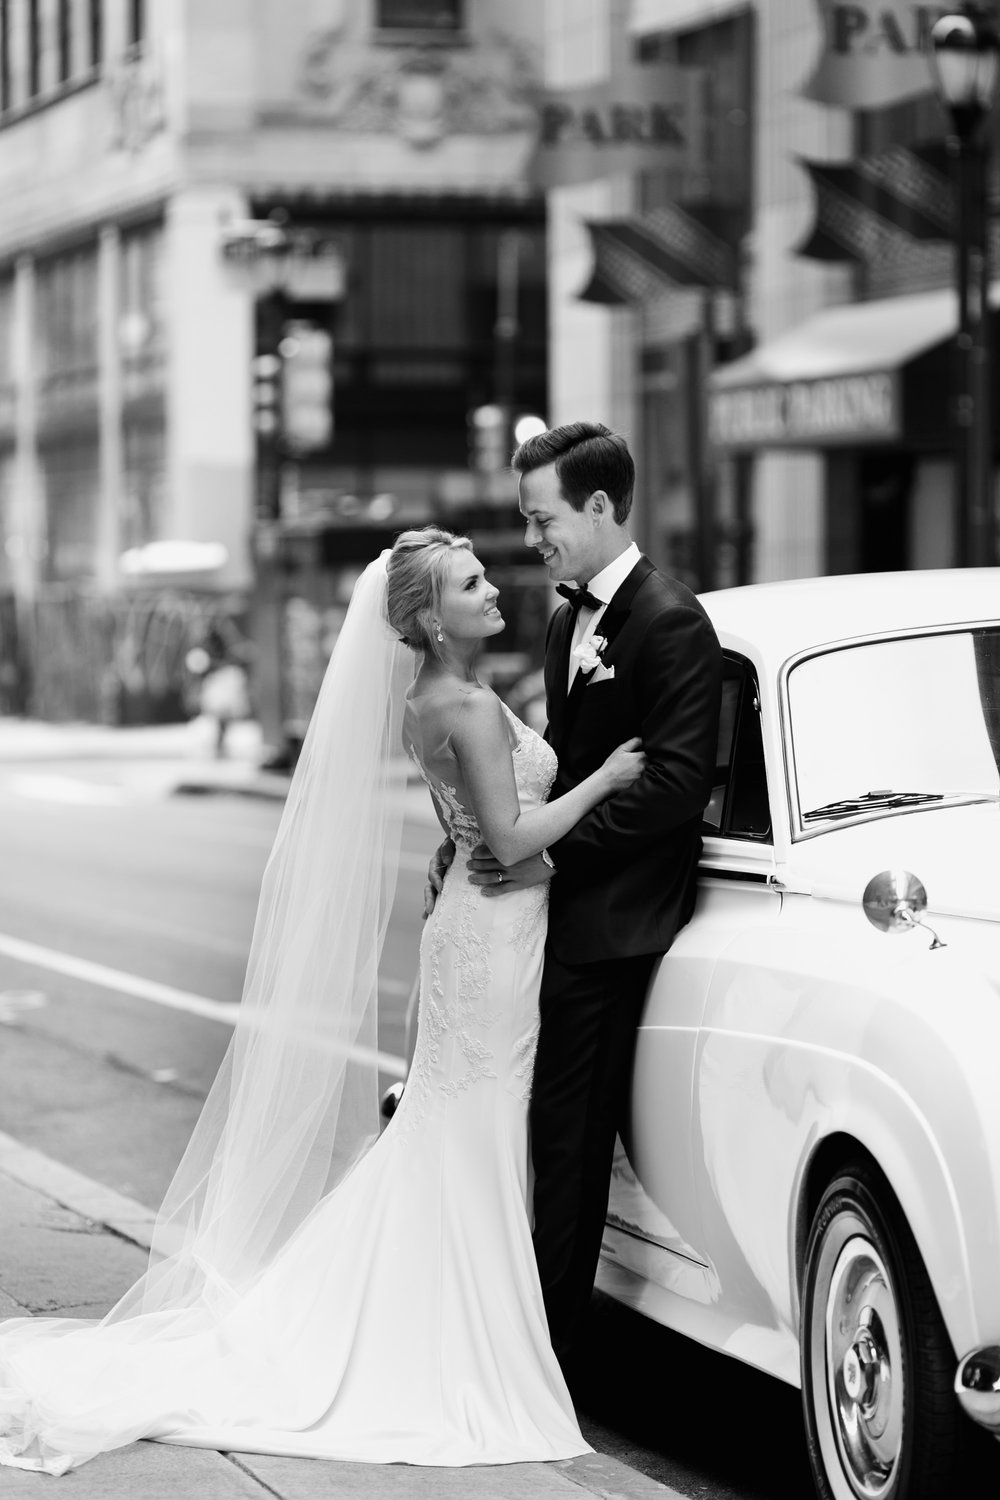 photography-wedding-weddings-natural-candid-union league-philadelphia-black tie-city hall-broad street-editorial-modern-fine-art-13.JPG